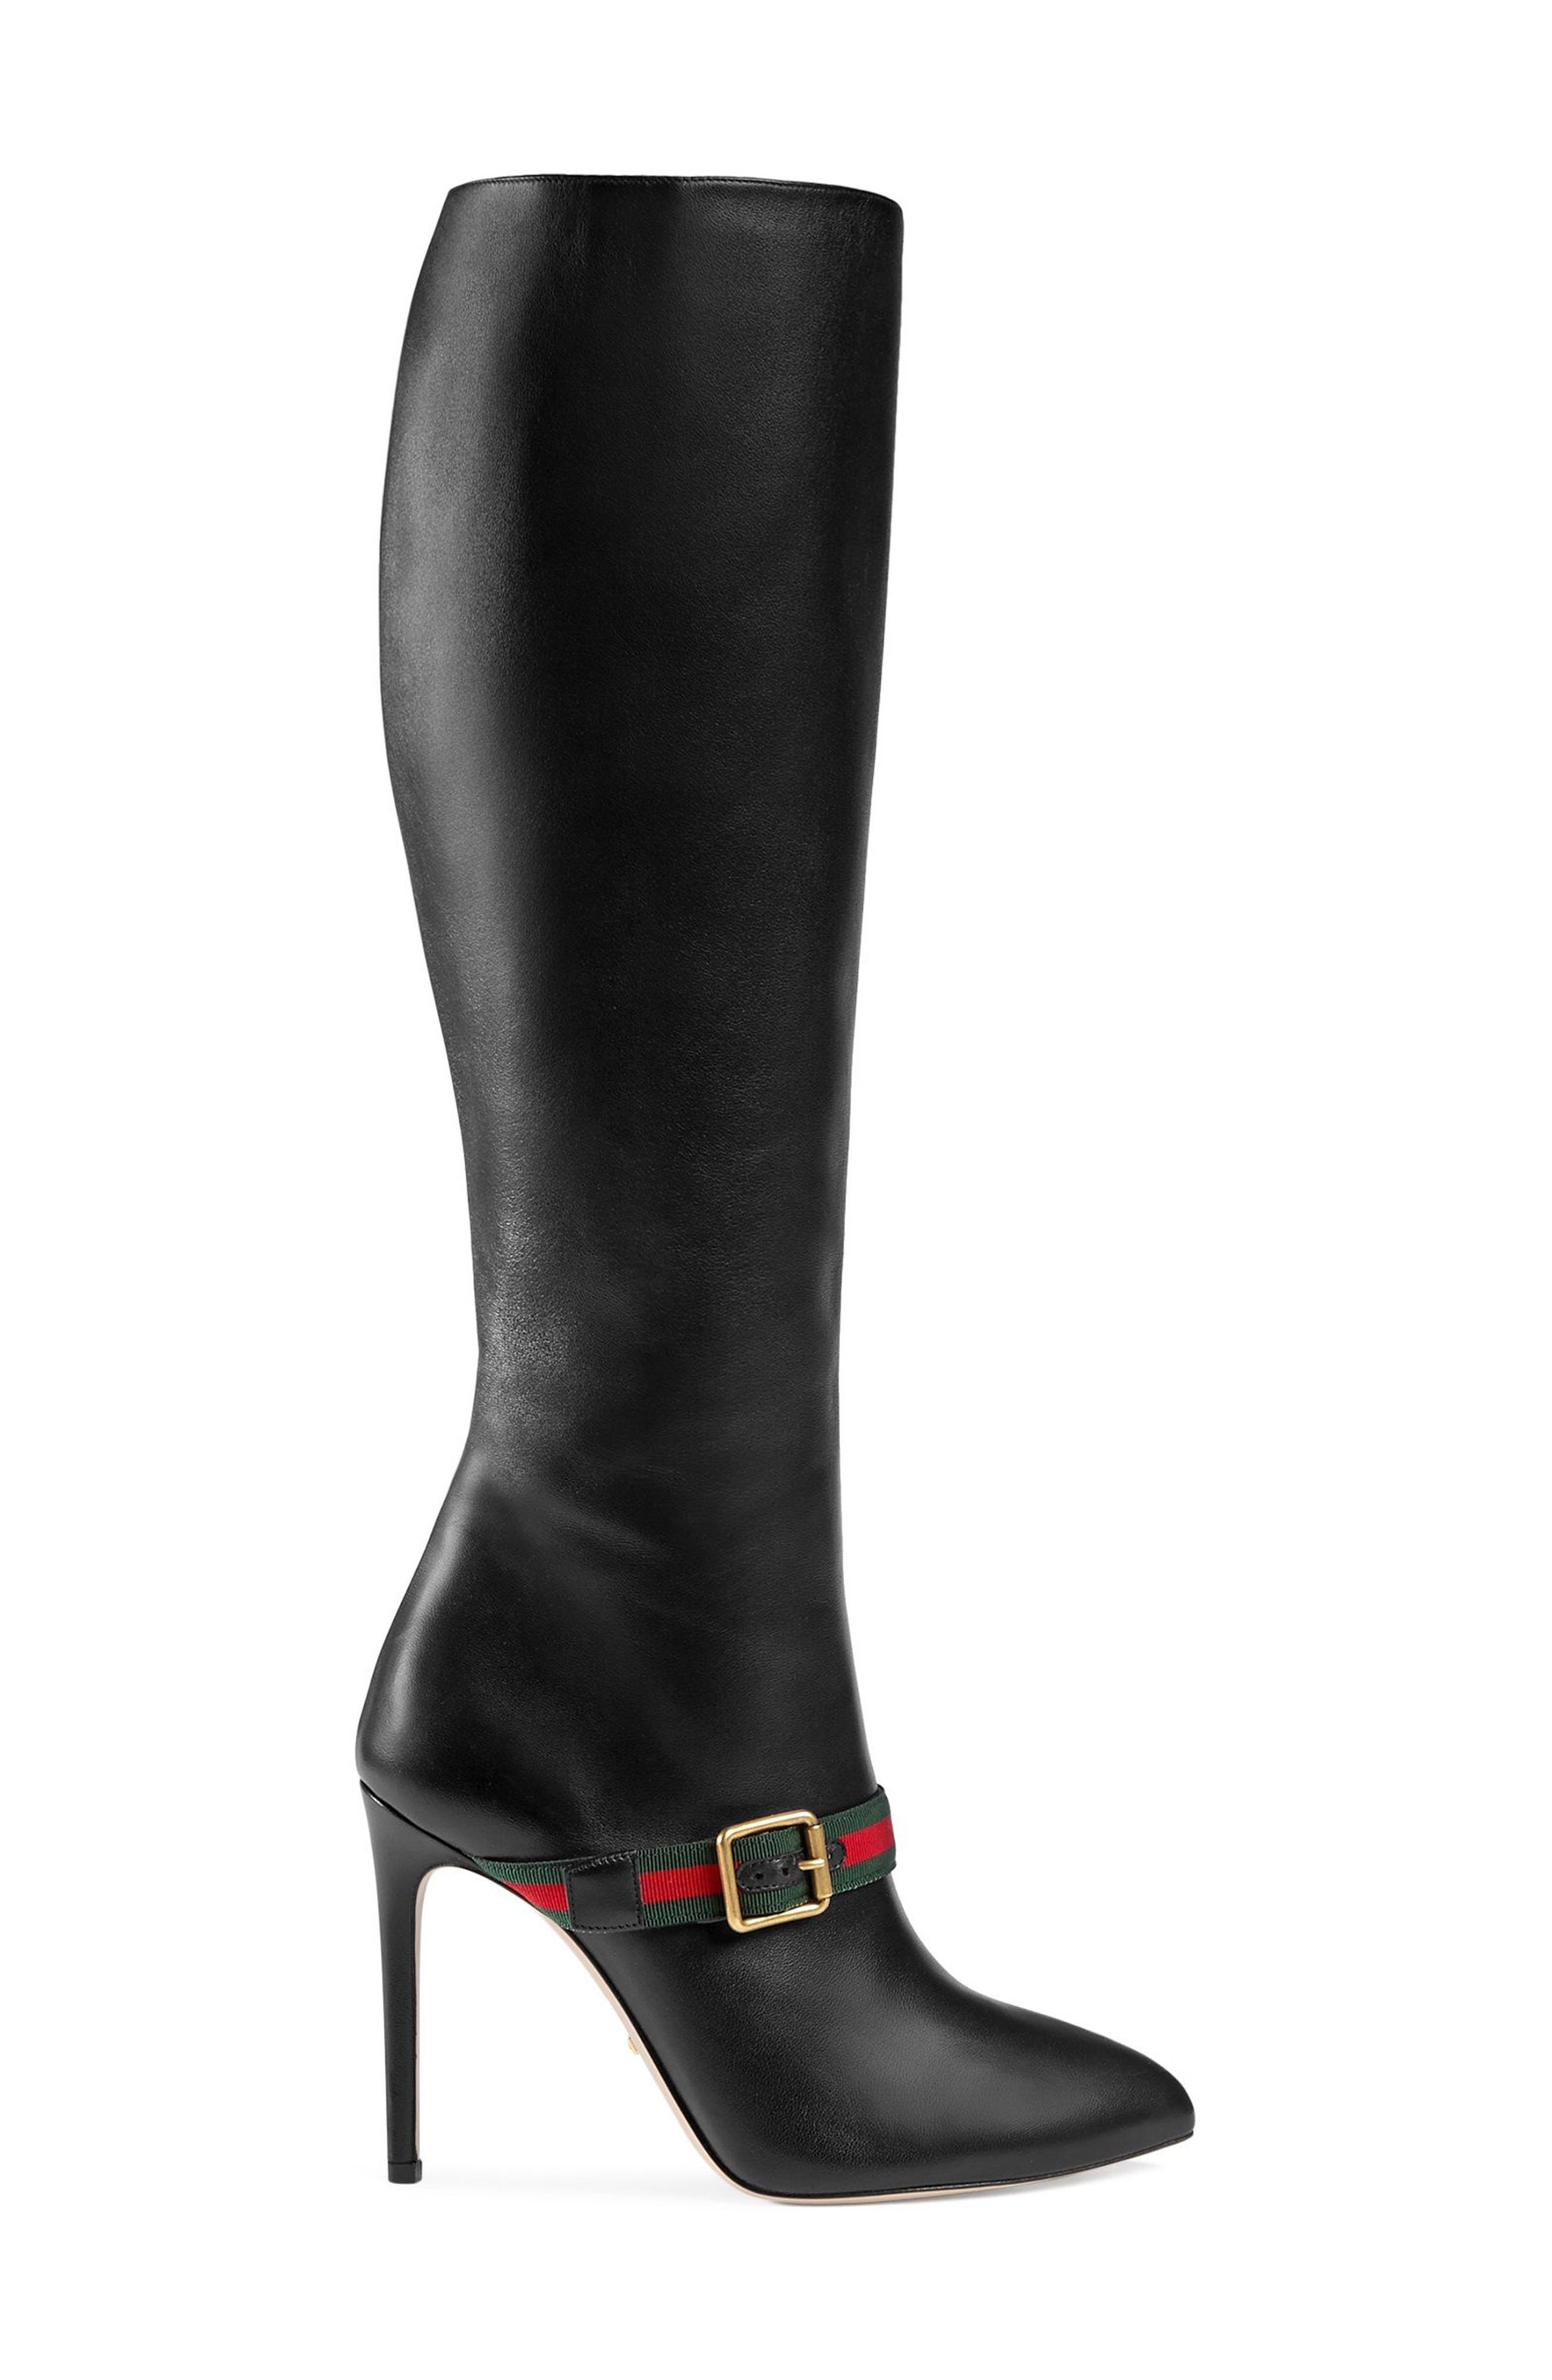 Alternate Image 1 Selected - Gucci Sylvie Strap Tall Boot (Women)